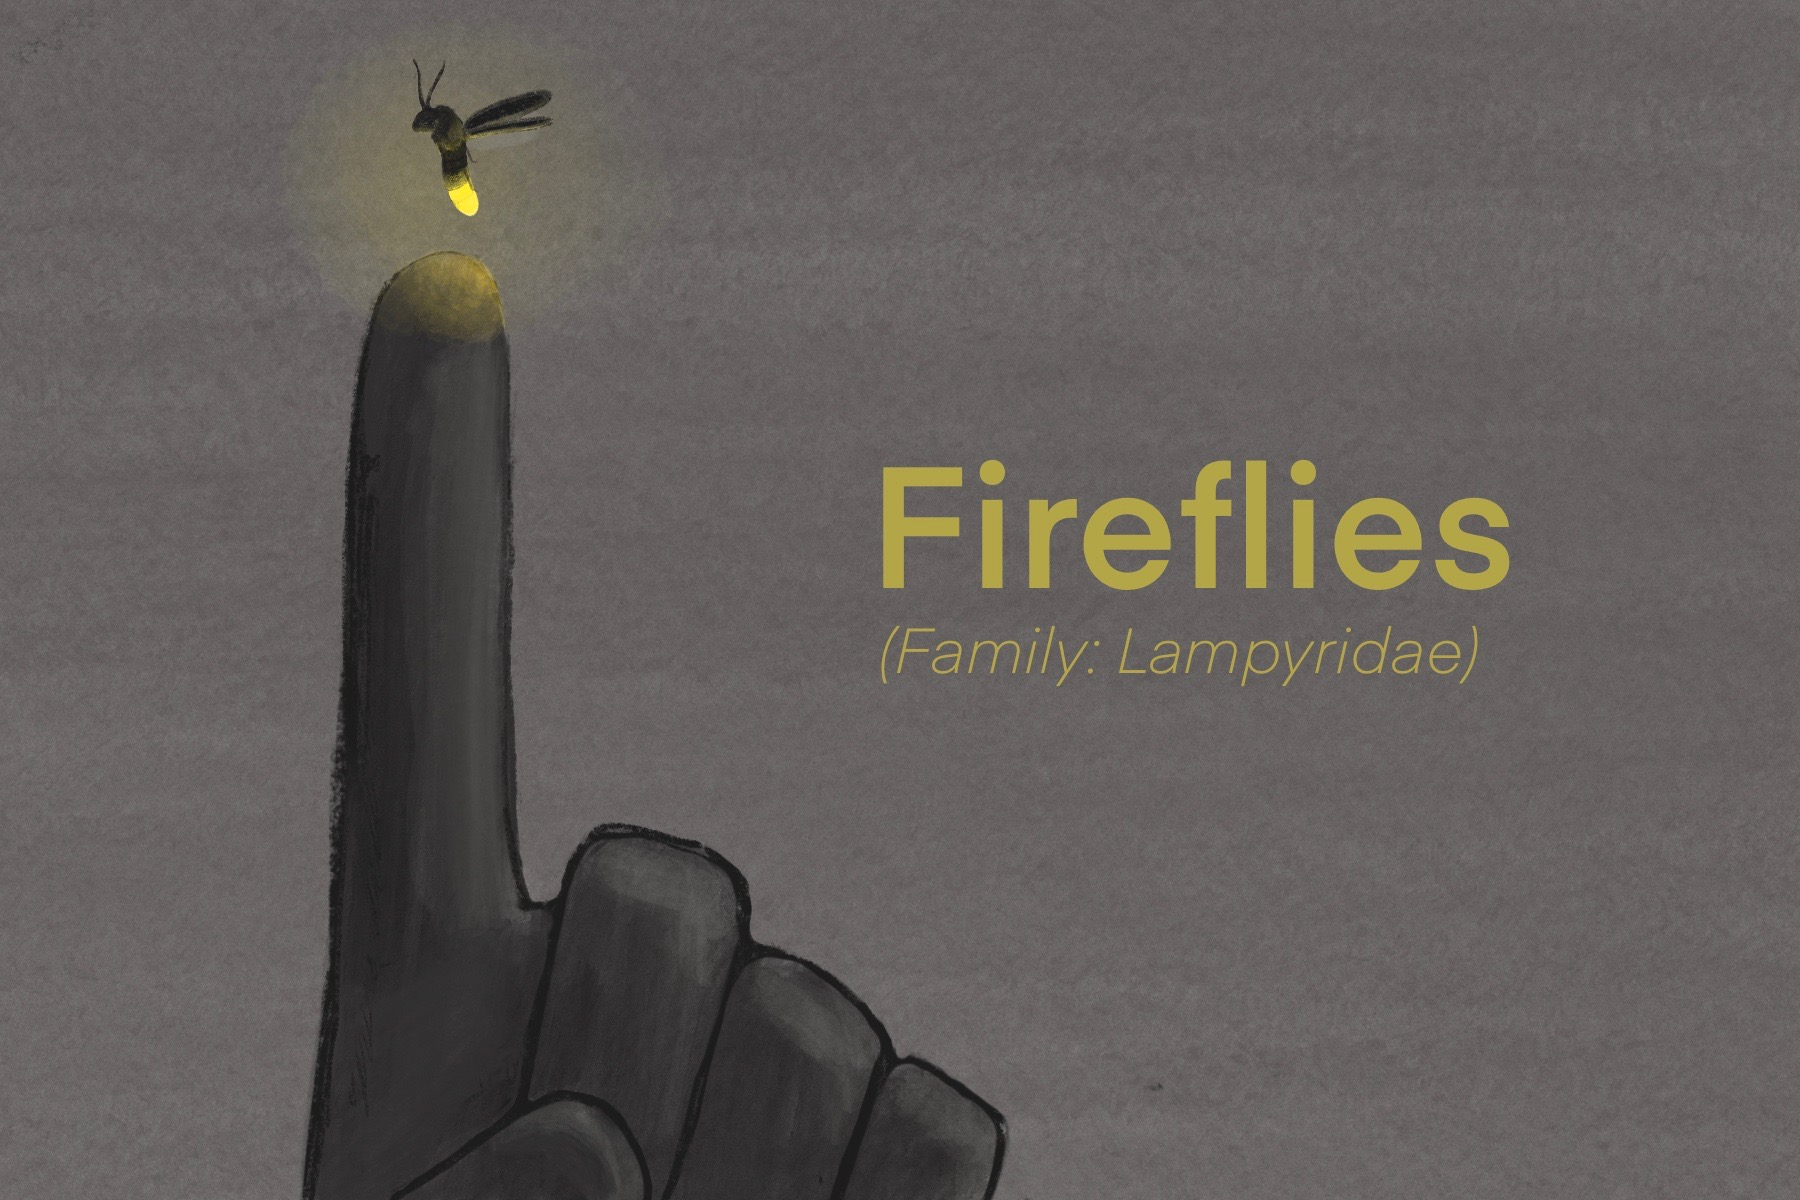 Graphic of someone pointing to a firefly. Text overlayed with Fireflies (family: lampyridae) over the graphic